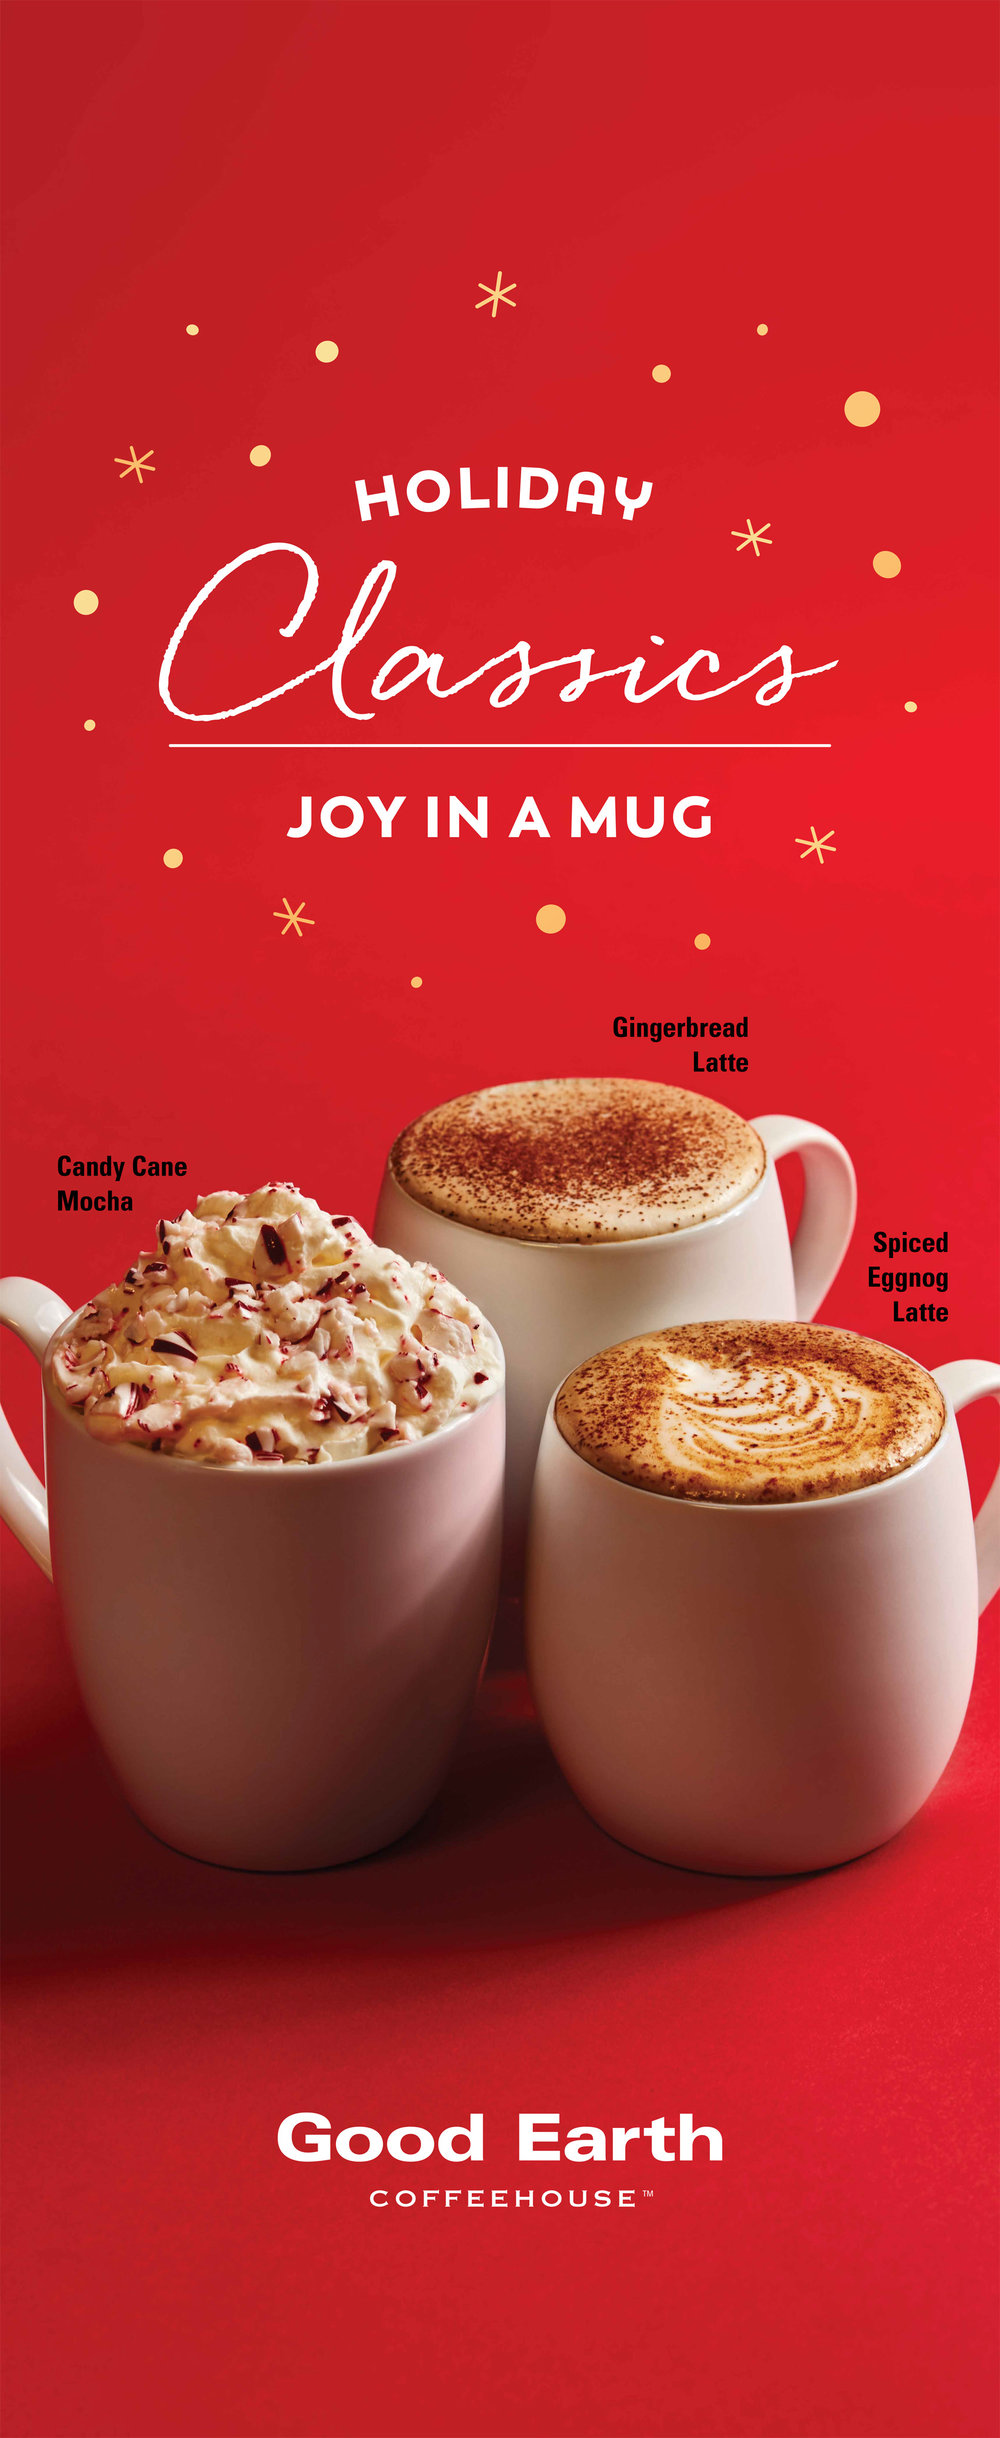 ge_2017_holiday_standee_red_cup1.jpg